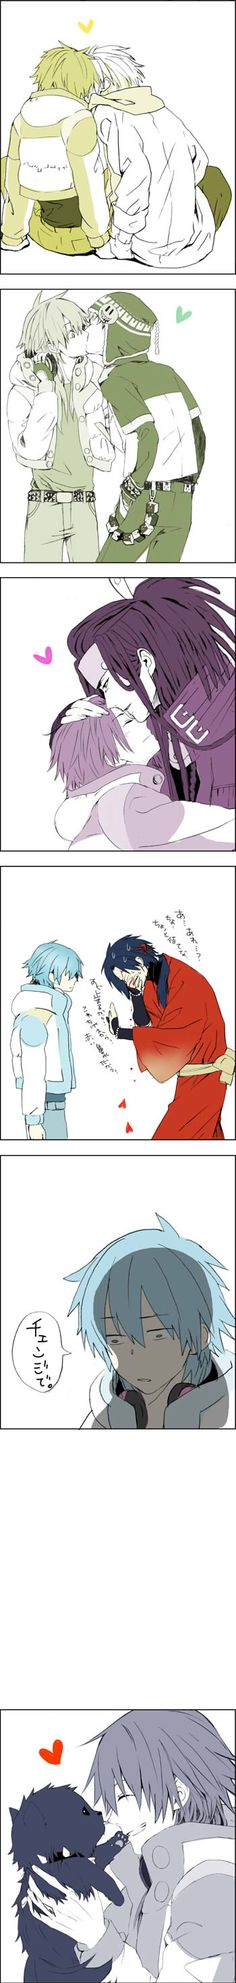 Aoba x everyone  (DRAMAtical Murder) i like all but the second one and my fav is the last one and the third to last